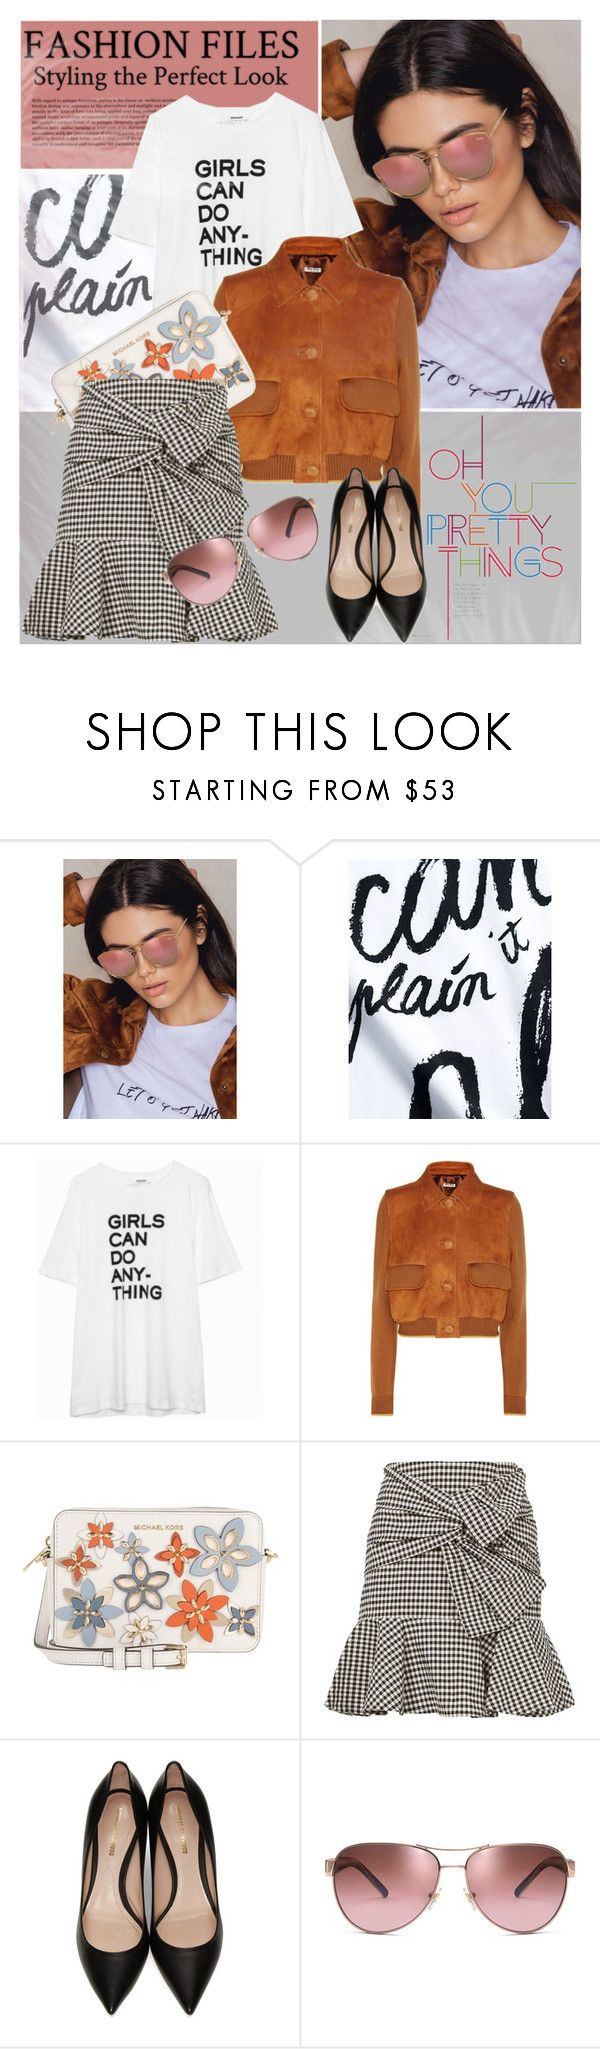 """""""Untitled #1745"""" by elena-777s ❤ liked on Polyvore featuring Être Cécile, Zadig & Voltaire, Miu Miu, MICHAEL Michael Kors, Veronica Beard, Nicholas Kirkwood, Tory Burch, 2017 and springsummer2017"""